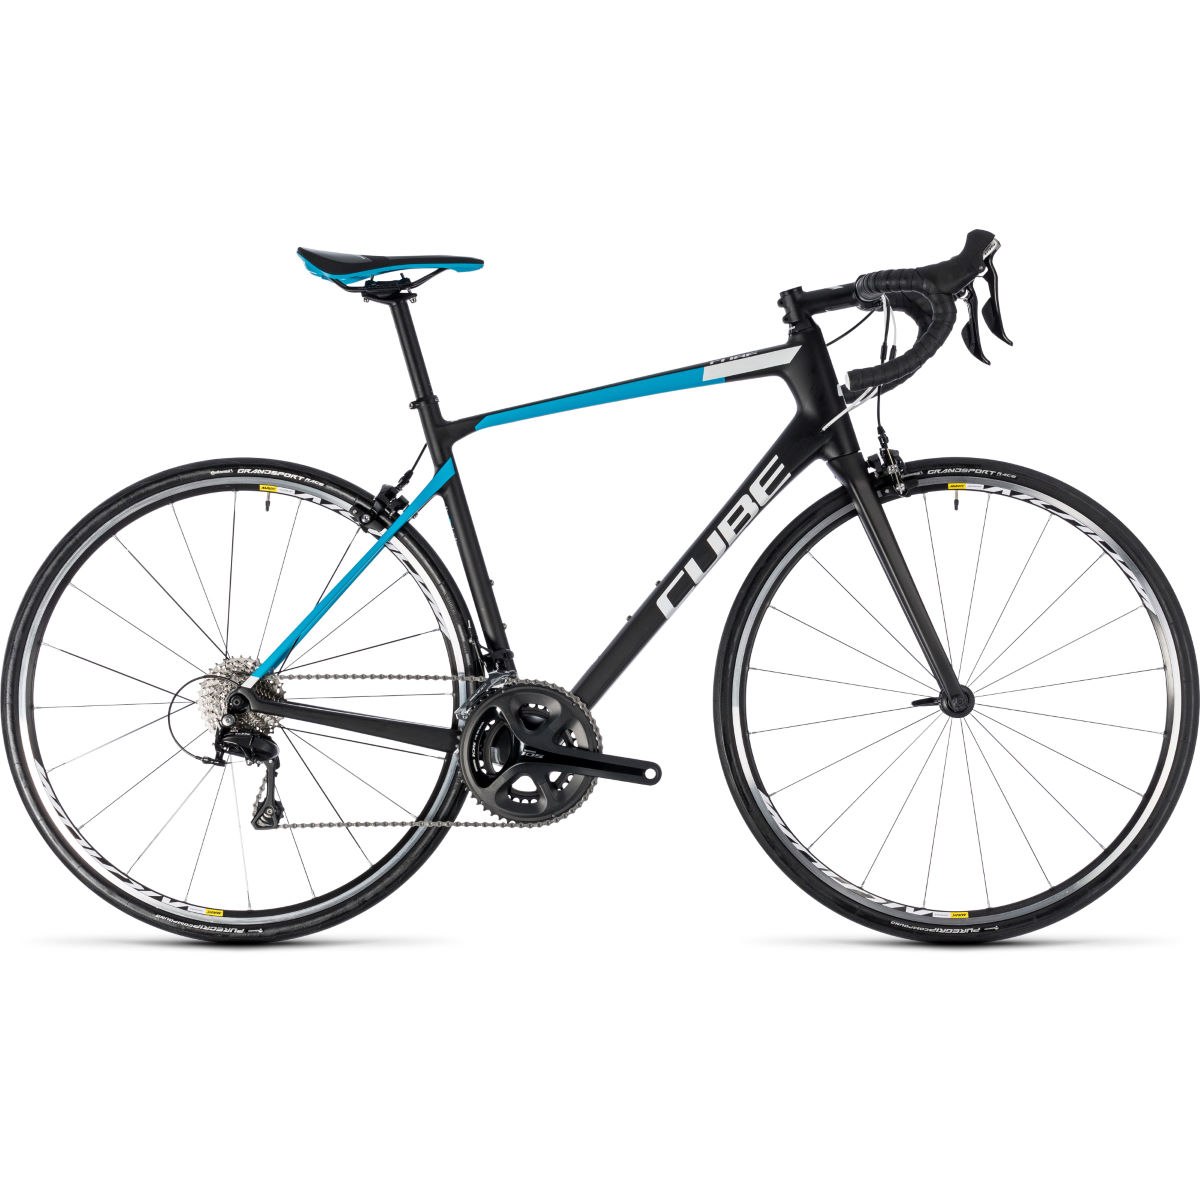 Cube Attain GTC Pro Road Bike - Bicicletas de carretera